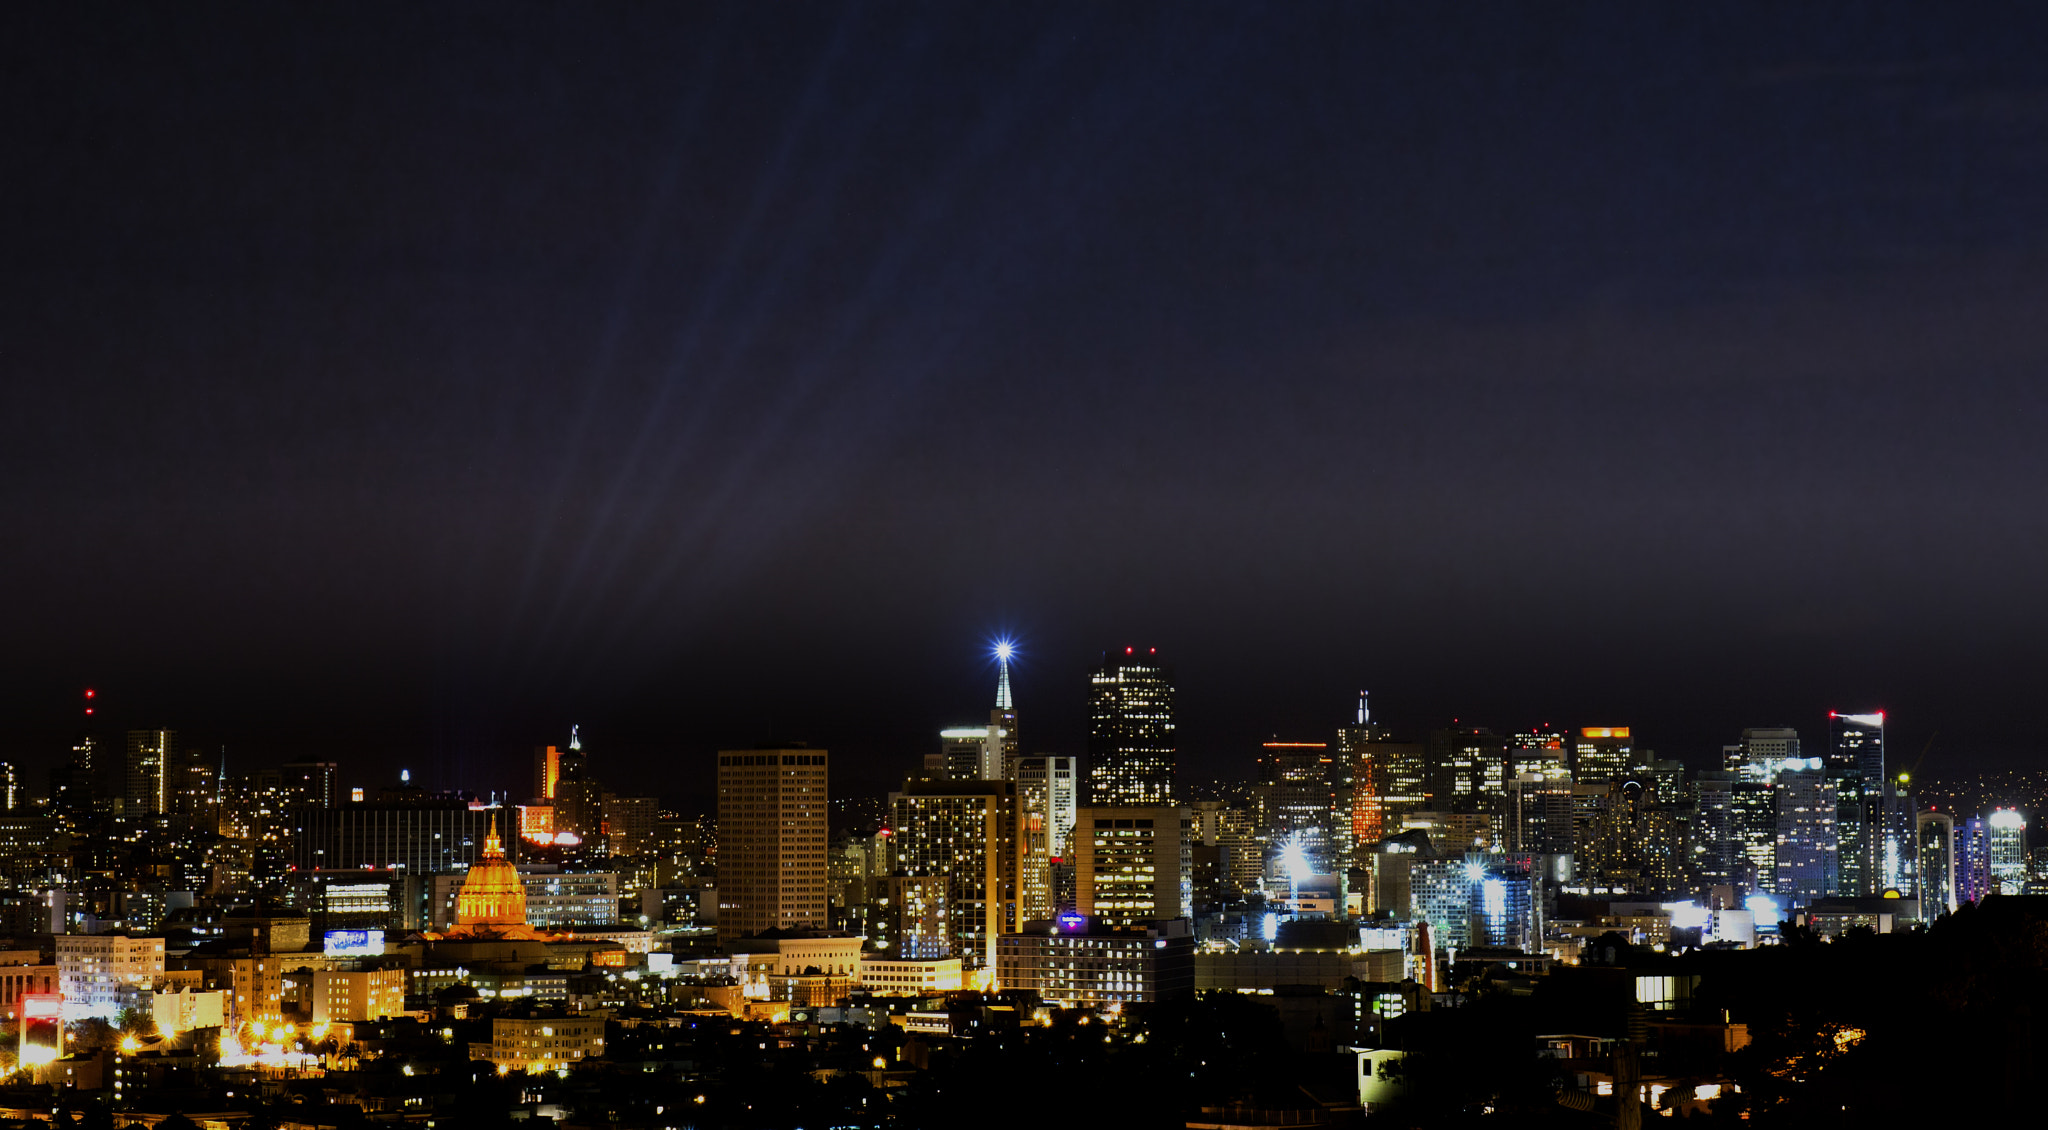 Photograph San Francisco Skyline during Orange October by Miguel Rios on 500px